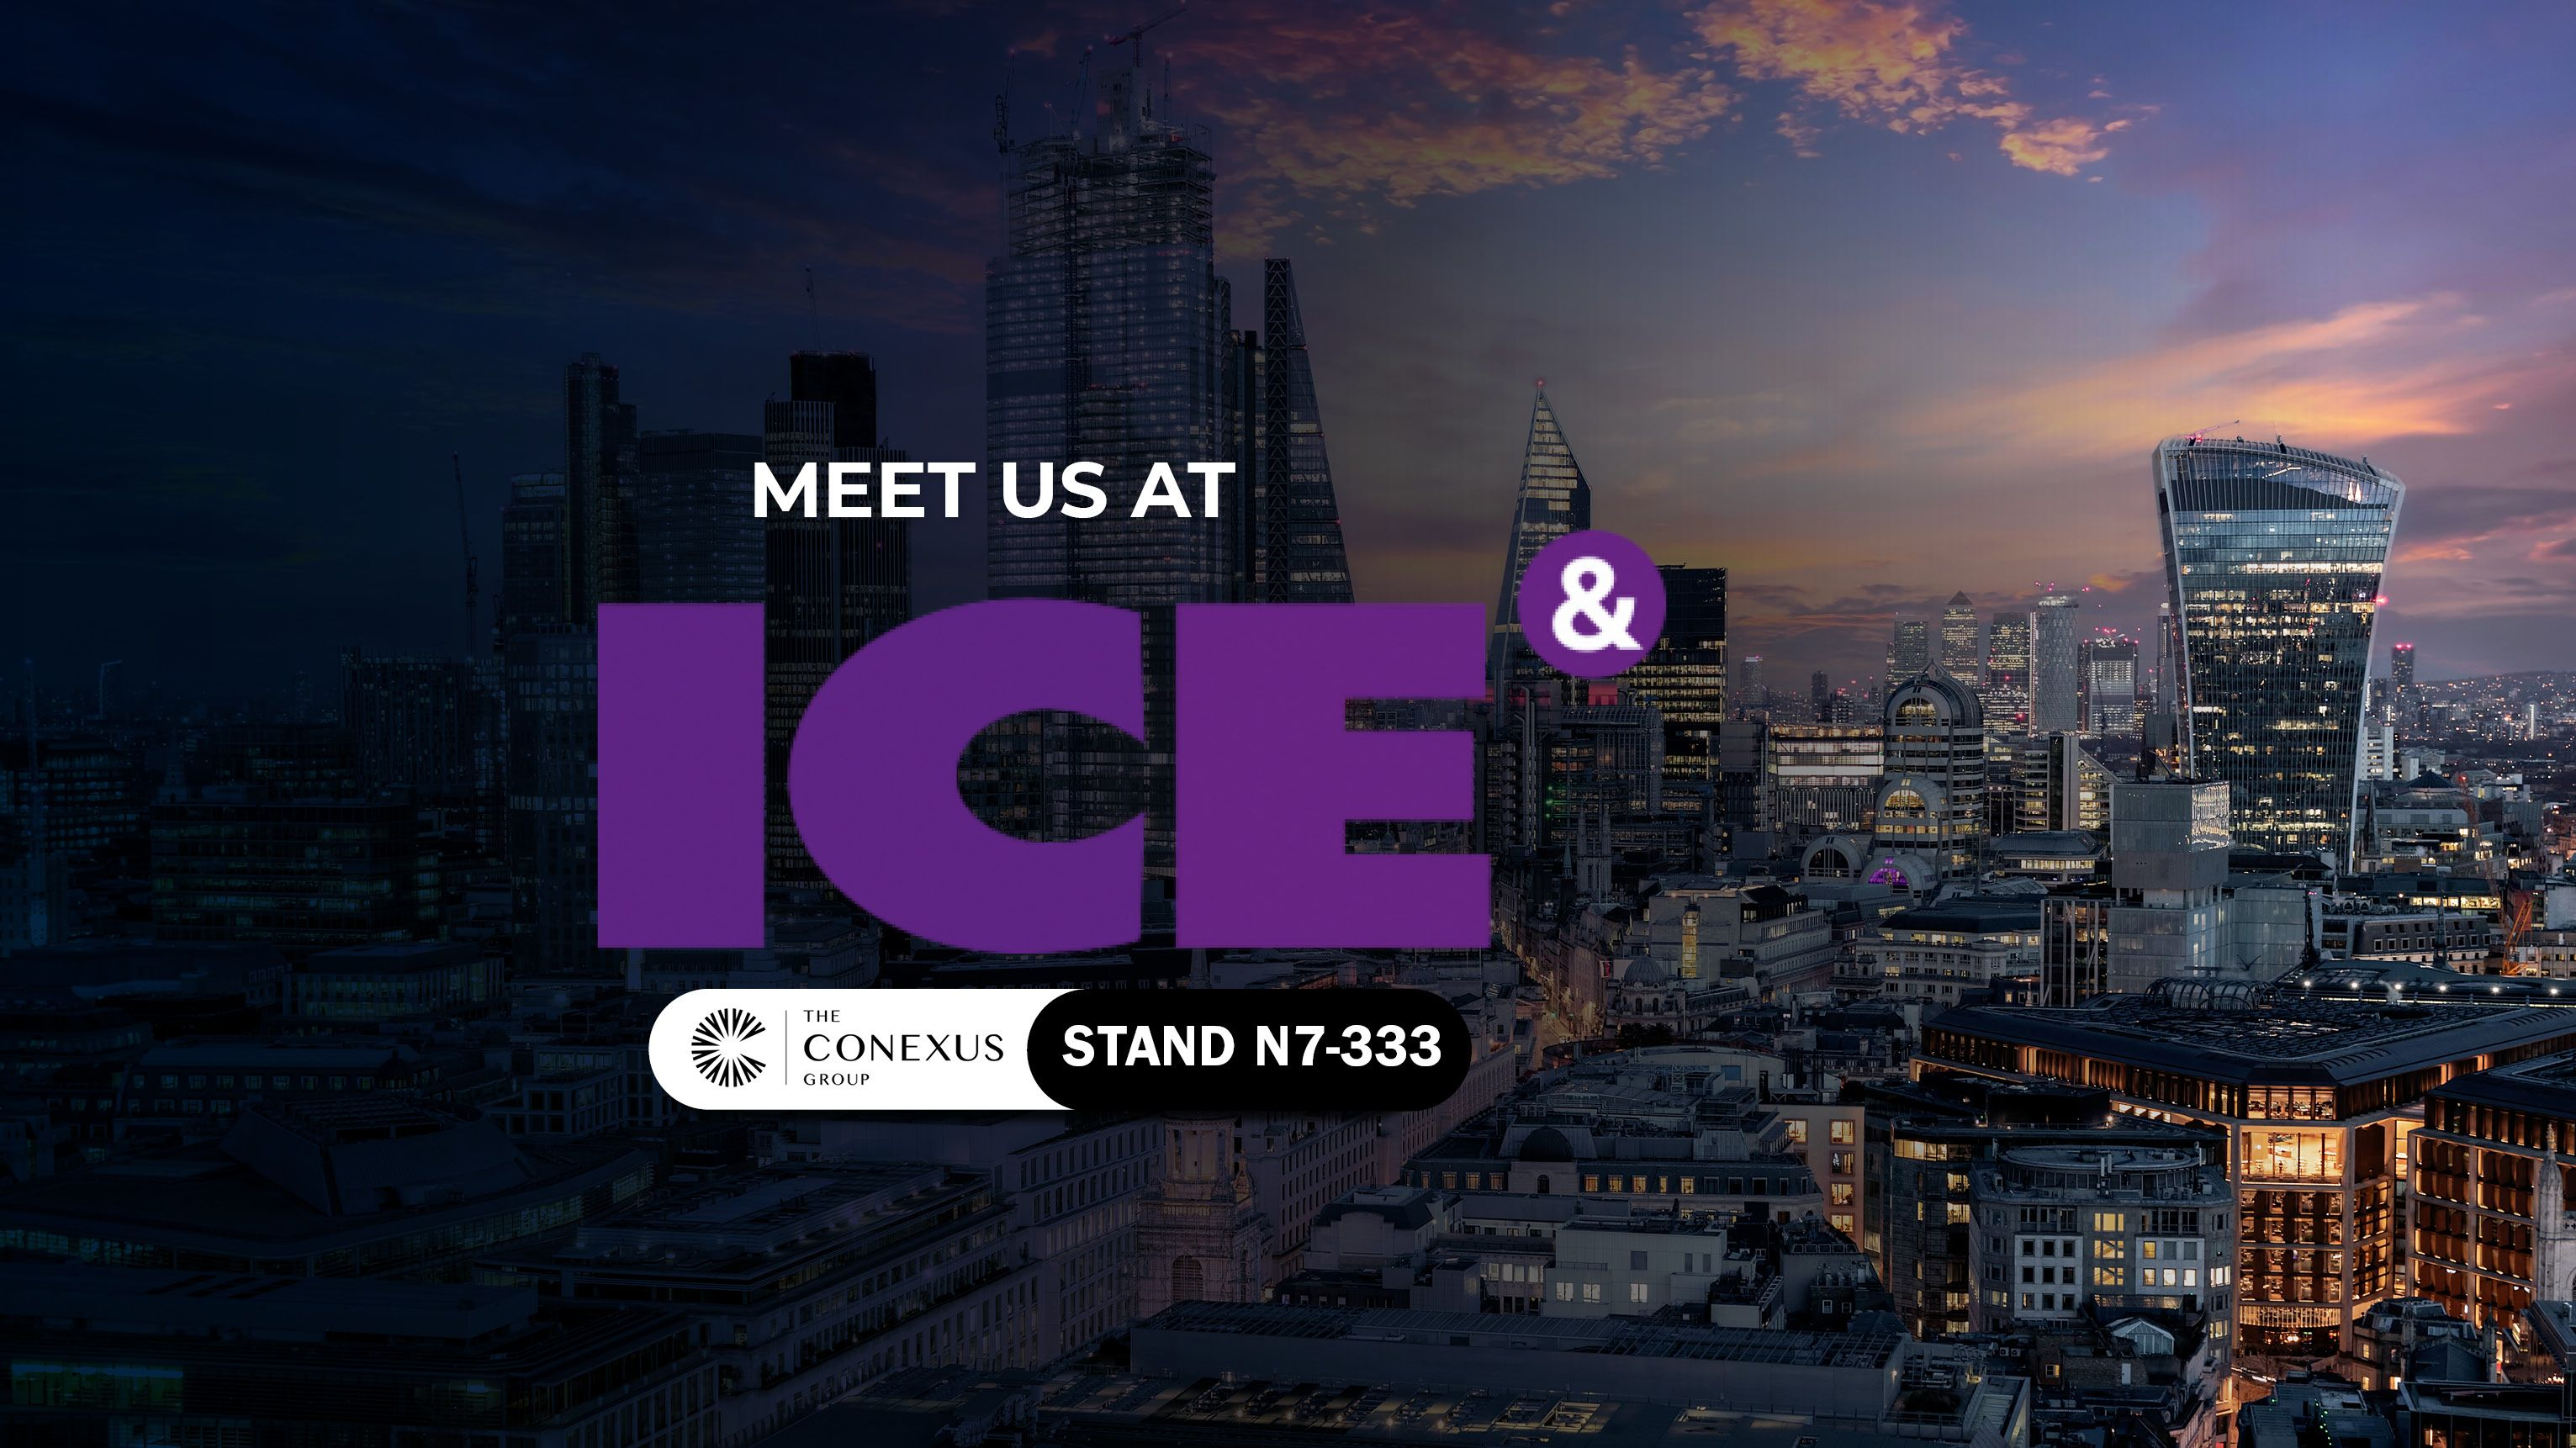 The Conexus Group at ICE London 2020: Meet Pentasia, iGaming Academy, Headcount & Partis At Stand N7-333